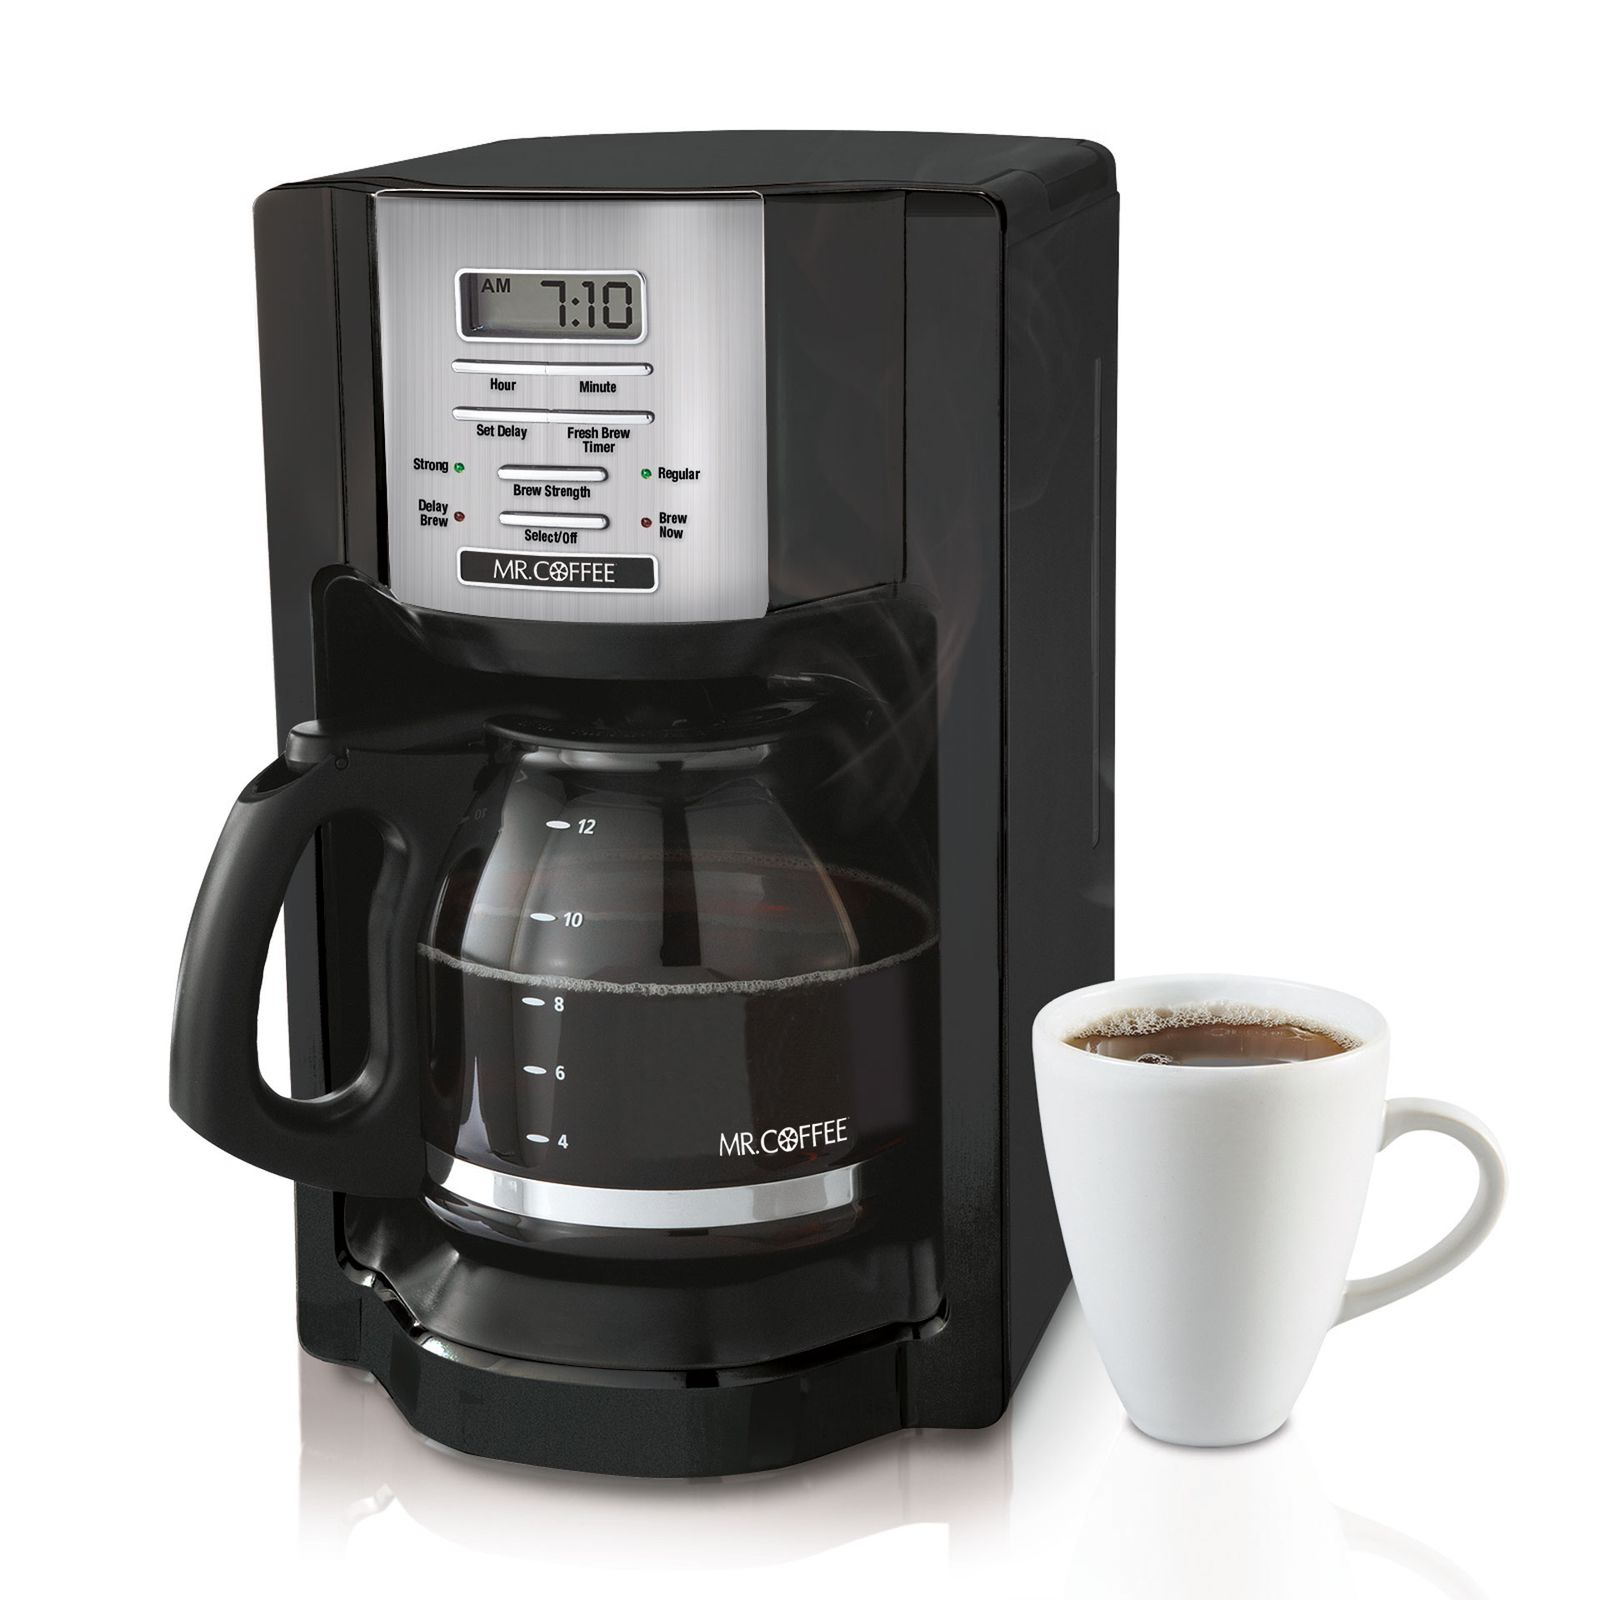 Mr Coffee K Cup Maker Review : Mr. Coffee 12-Cup Programmable Coffeemaker #BVMC-EHX23 Review